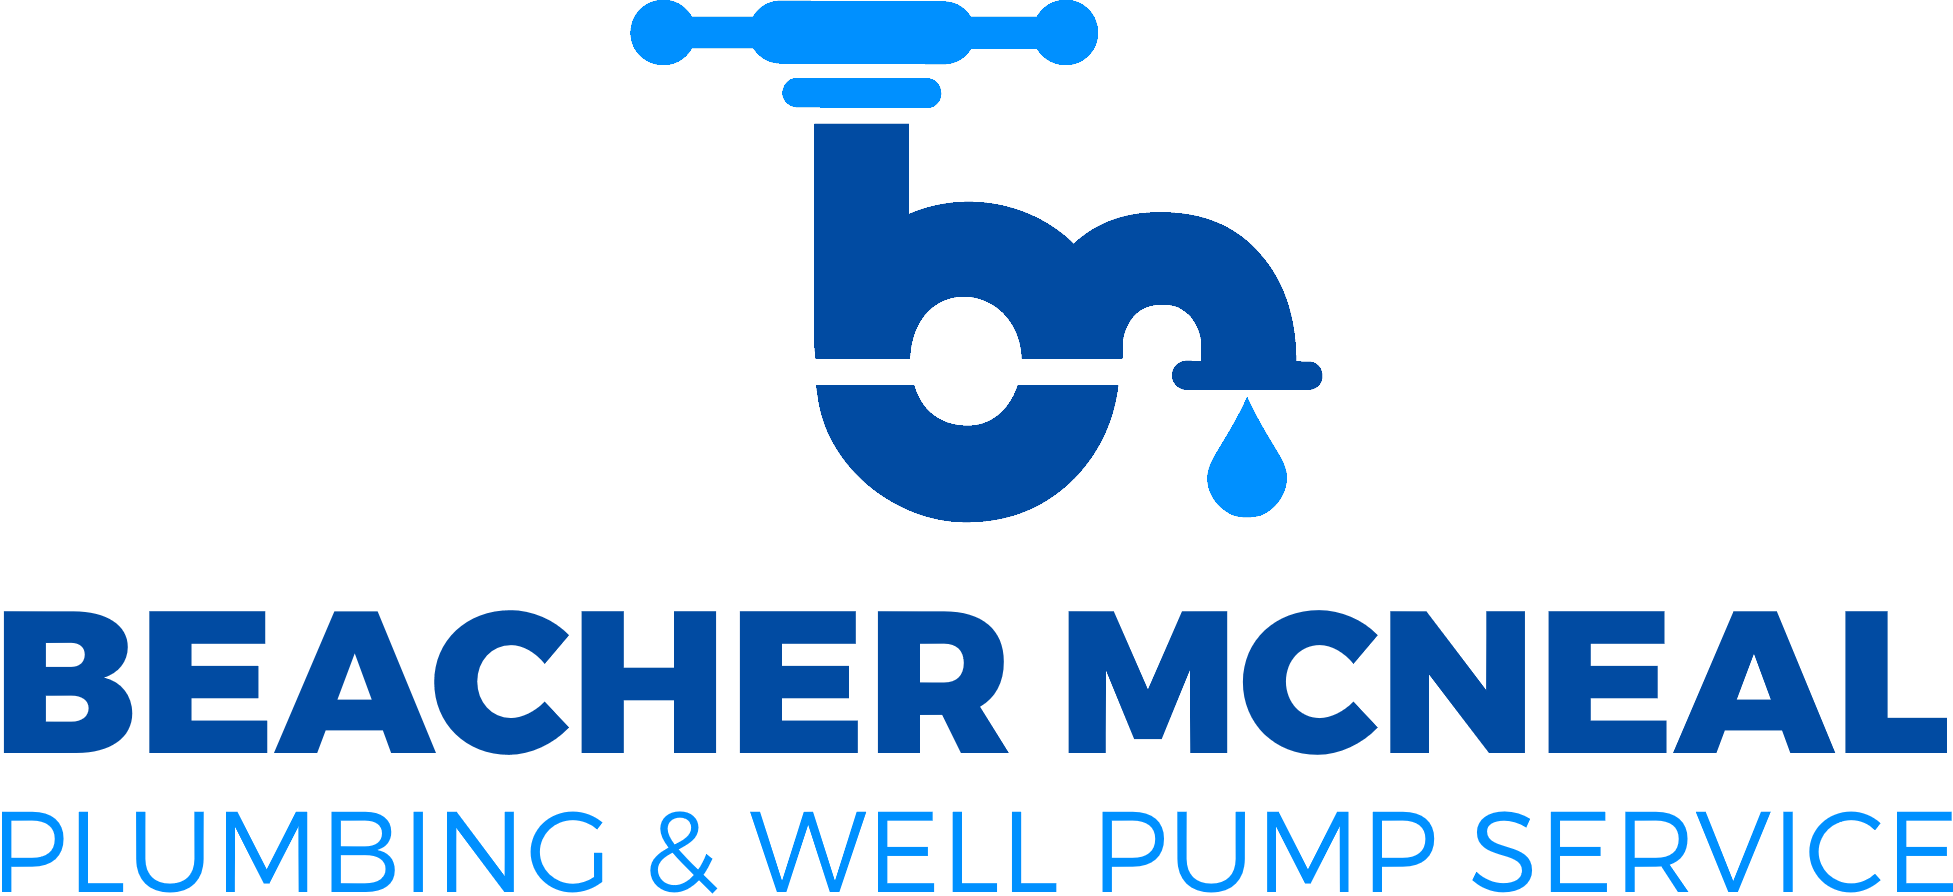 Beacher E. McNeal Plumbing & Well Pump Service